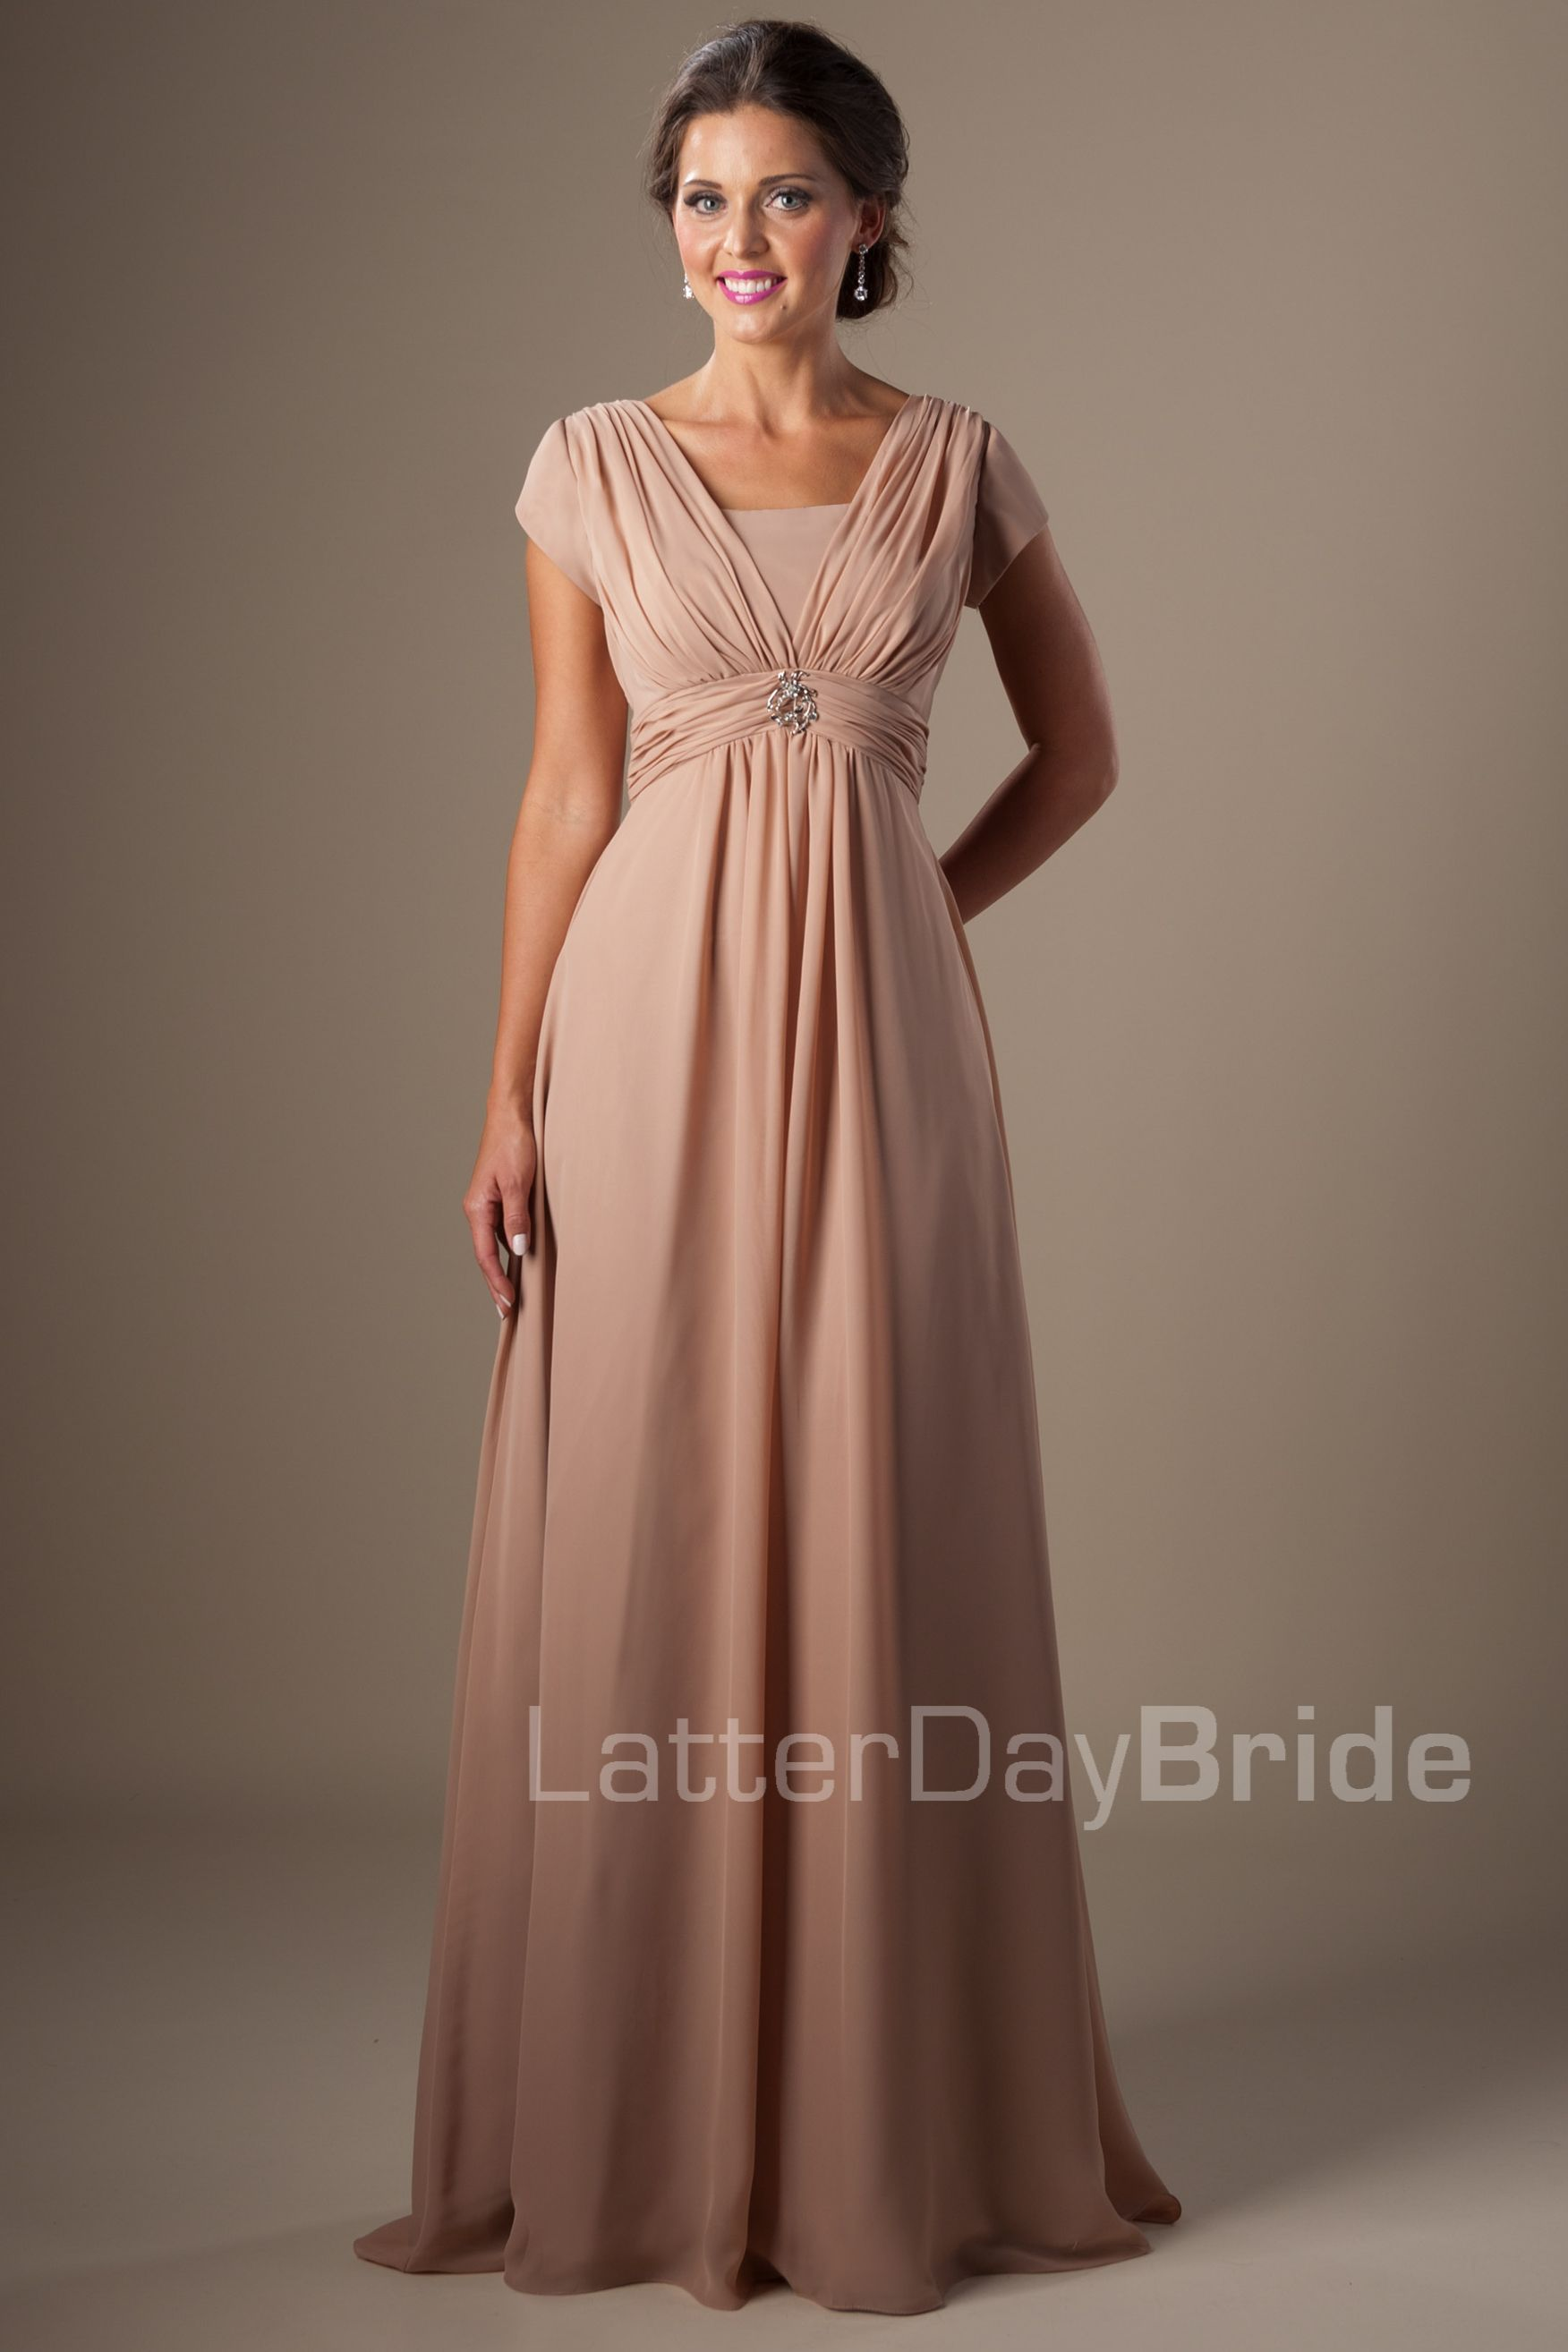 Modest prom dresses reed modest prom and homecoming dresses